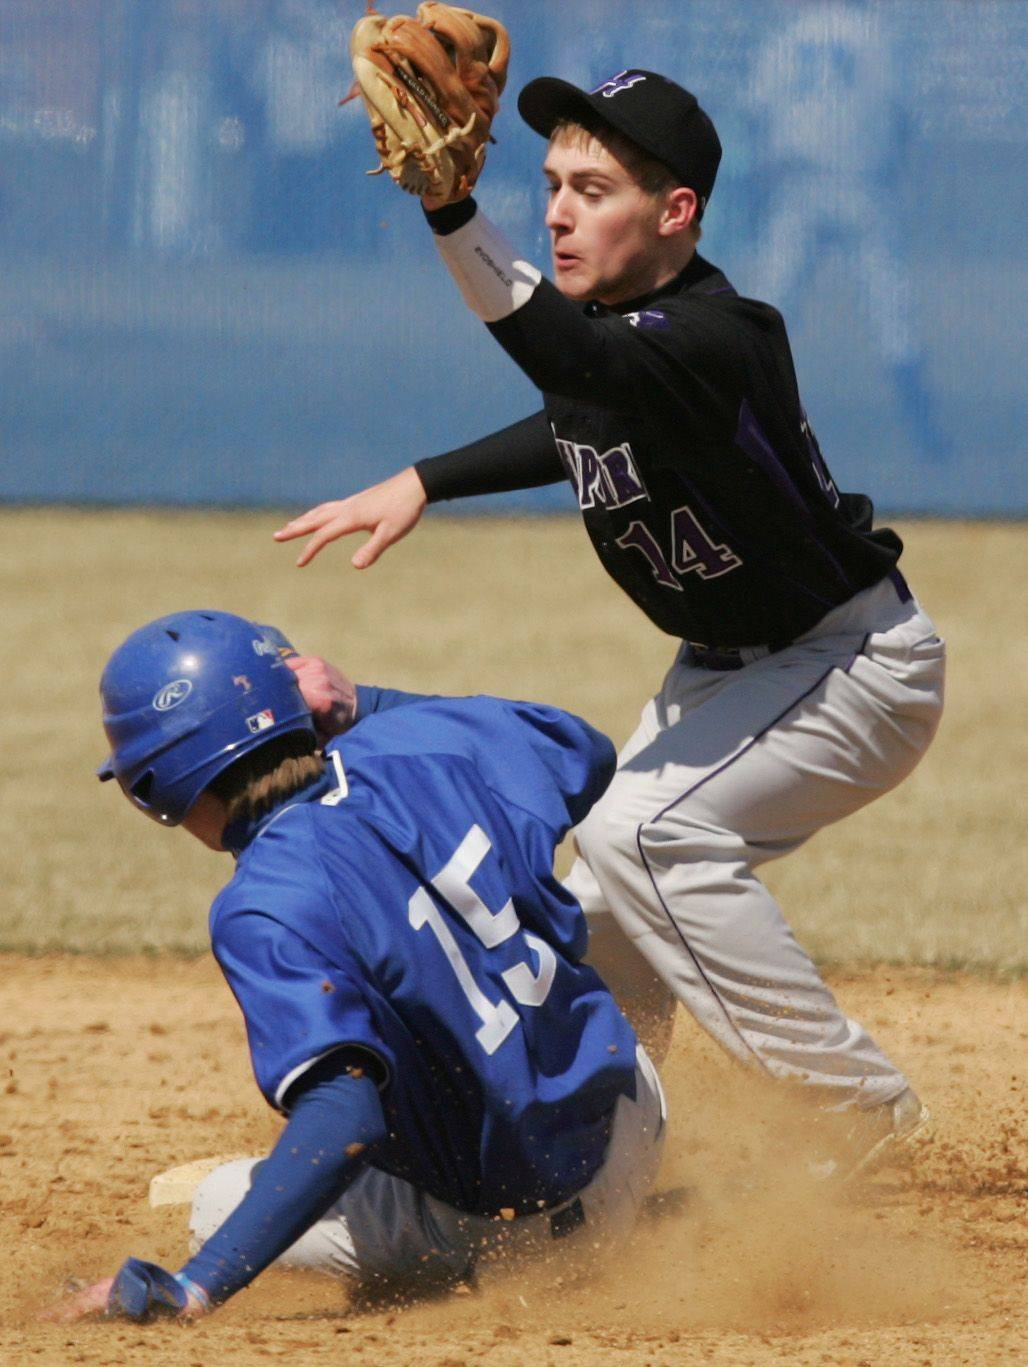 Hampshire's Zack Skog prepares to make a tag on Larkin baserunner Trevor Whitehead but can't make the play Monday.